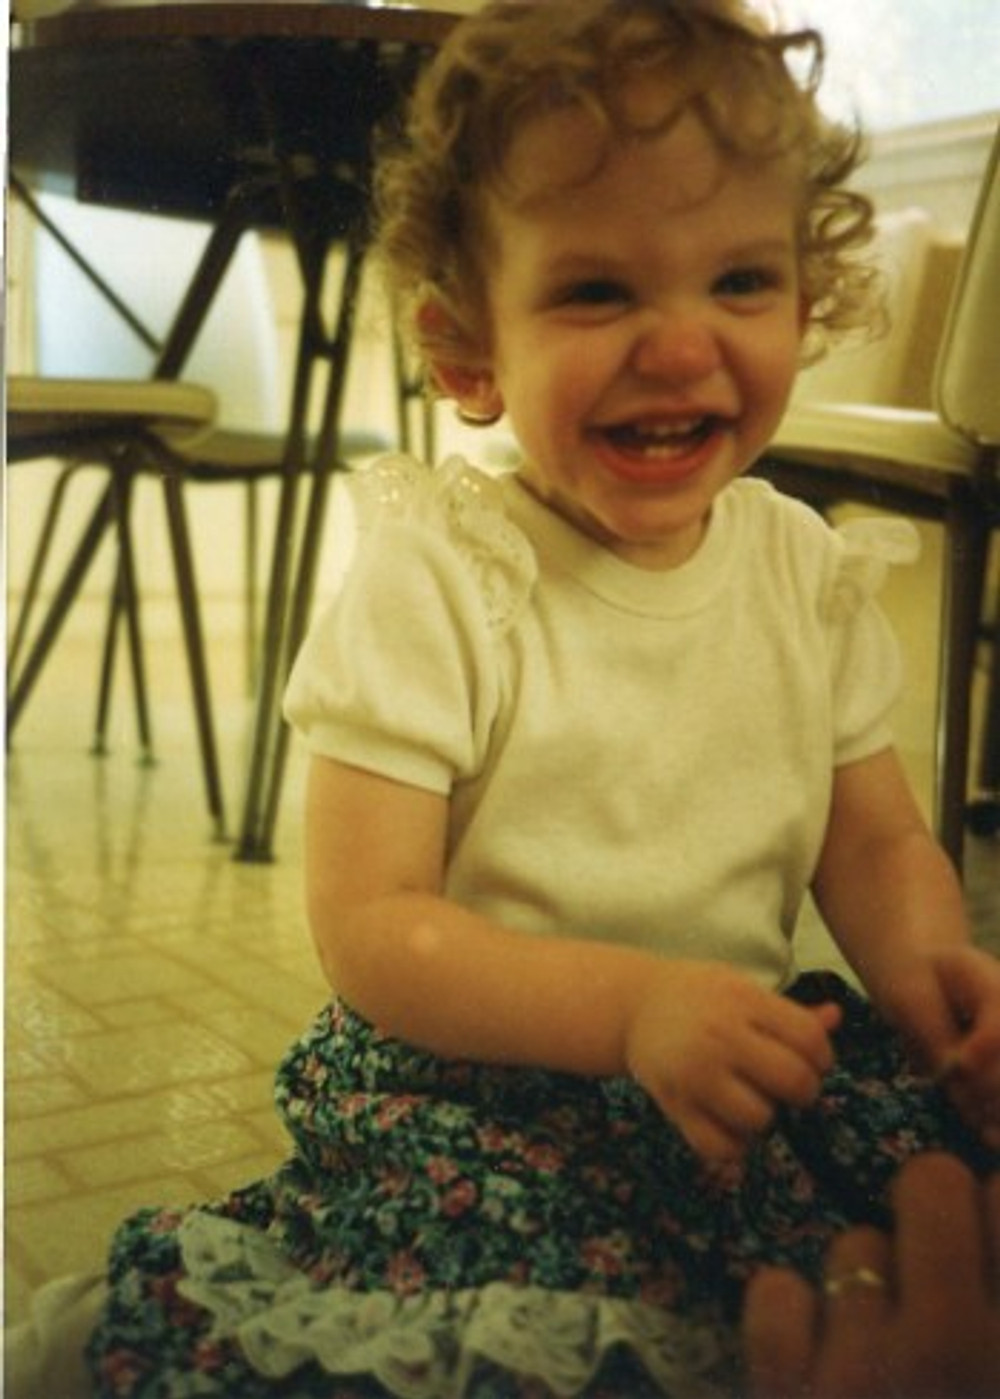 I was a happy baby!